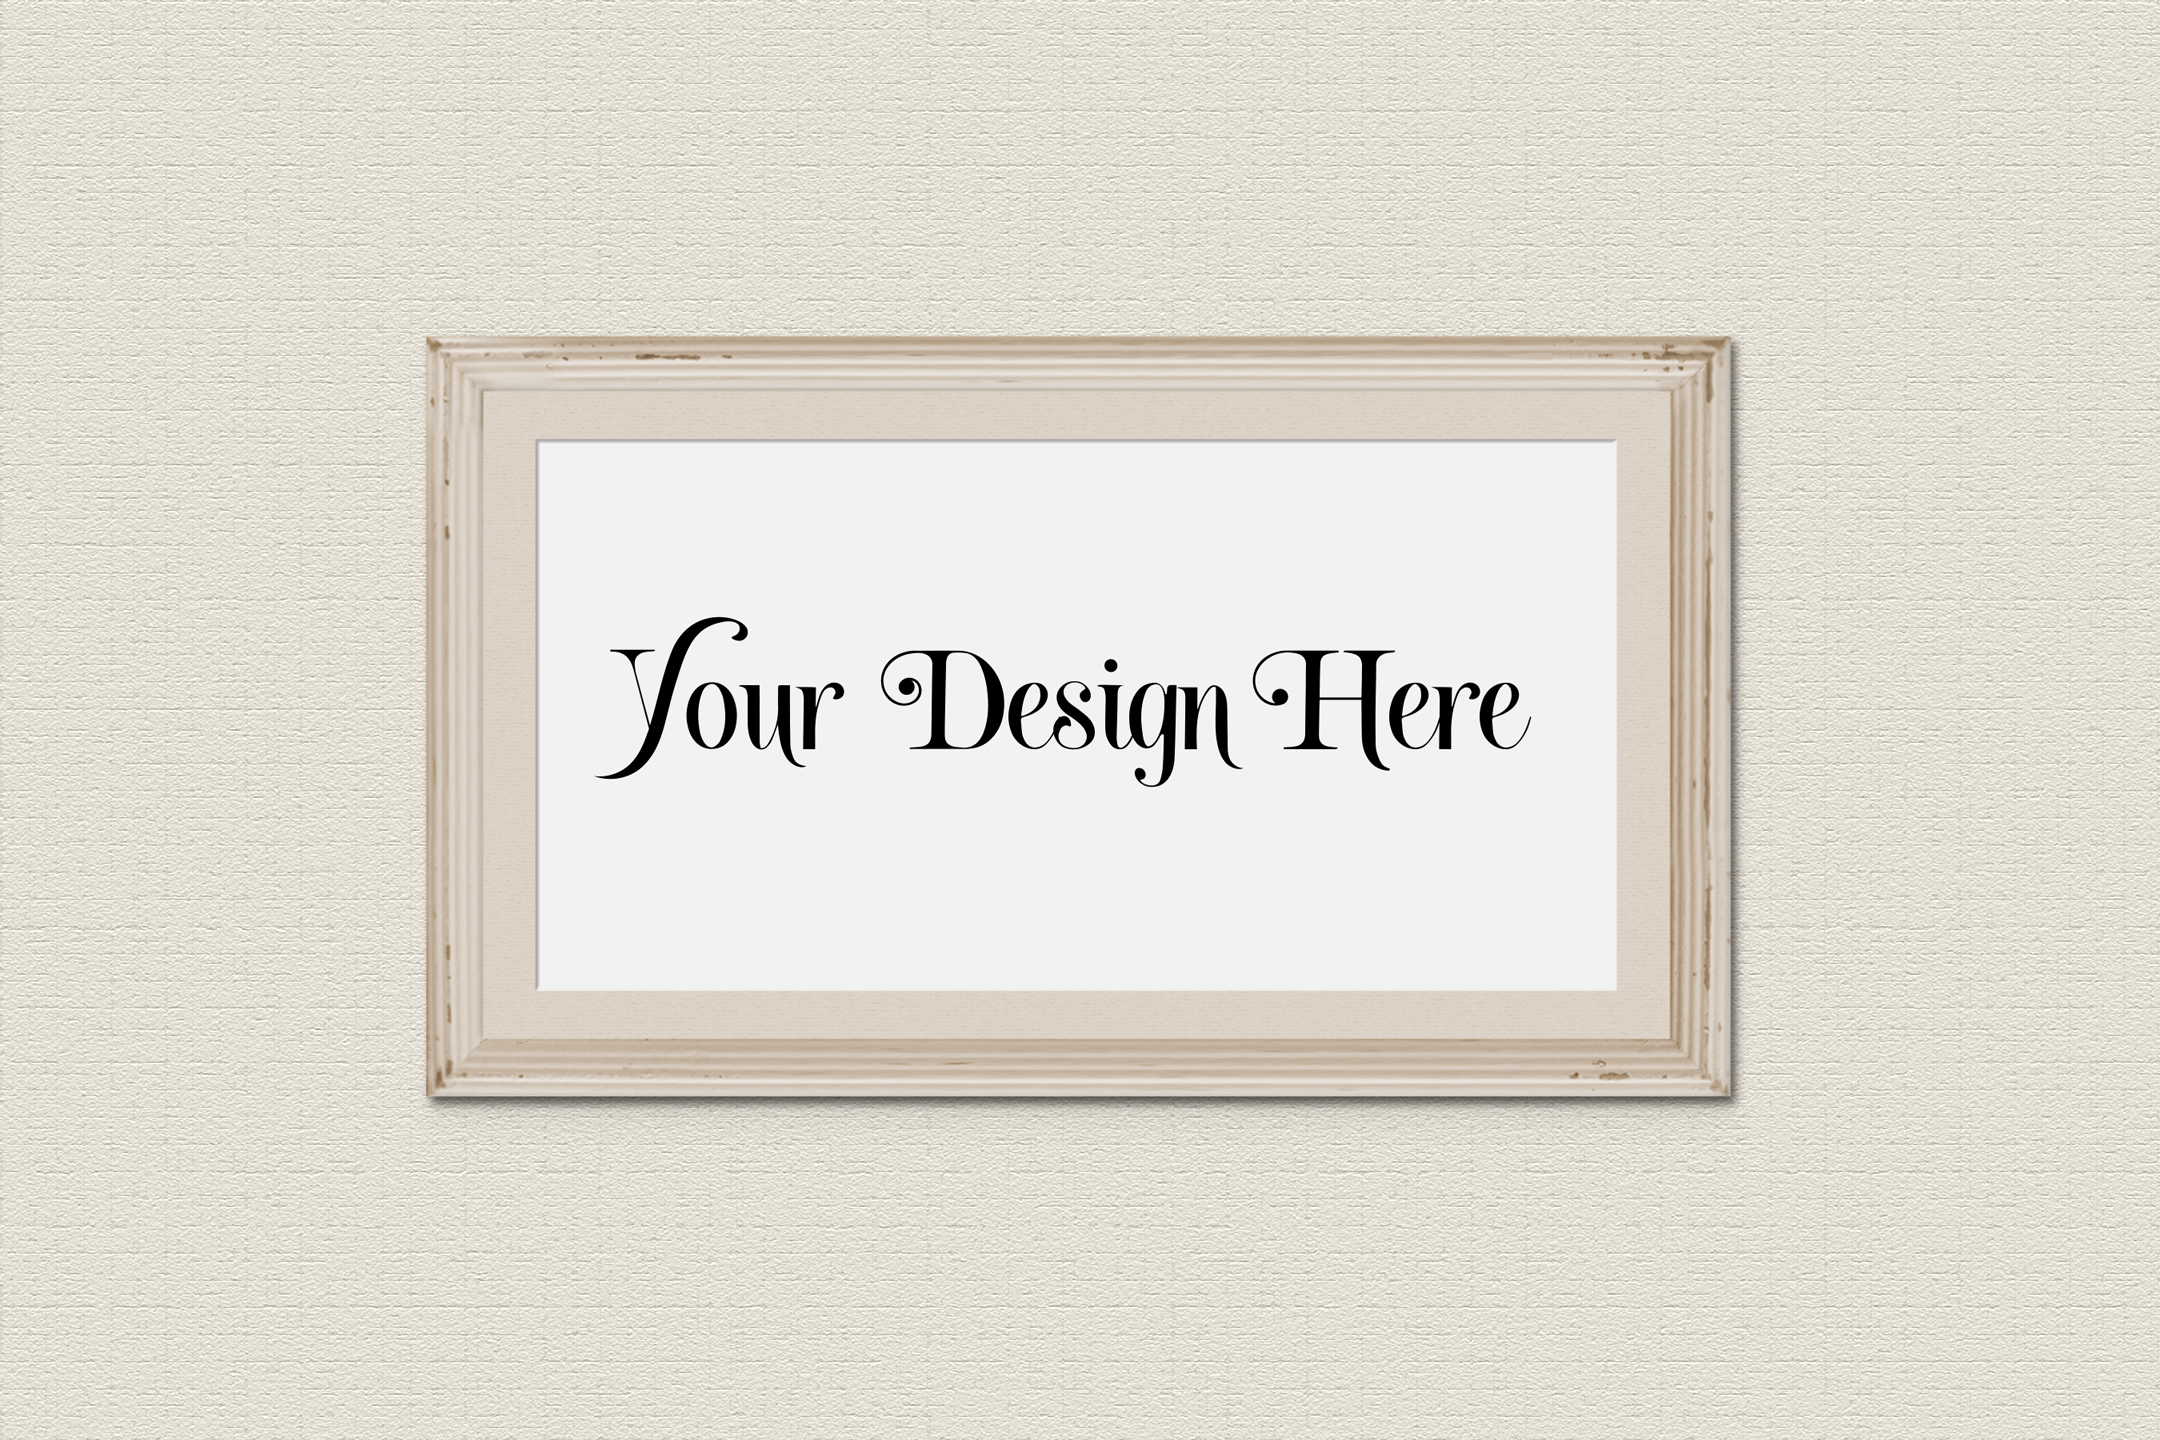 Horizontal Frame Mockup, Photoshop Smart Object, PSD example image 3